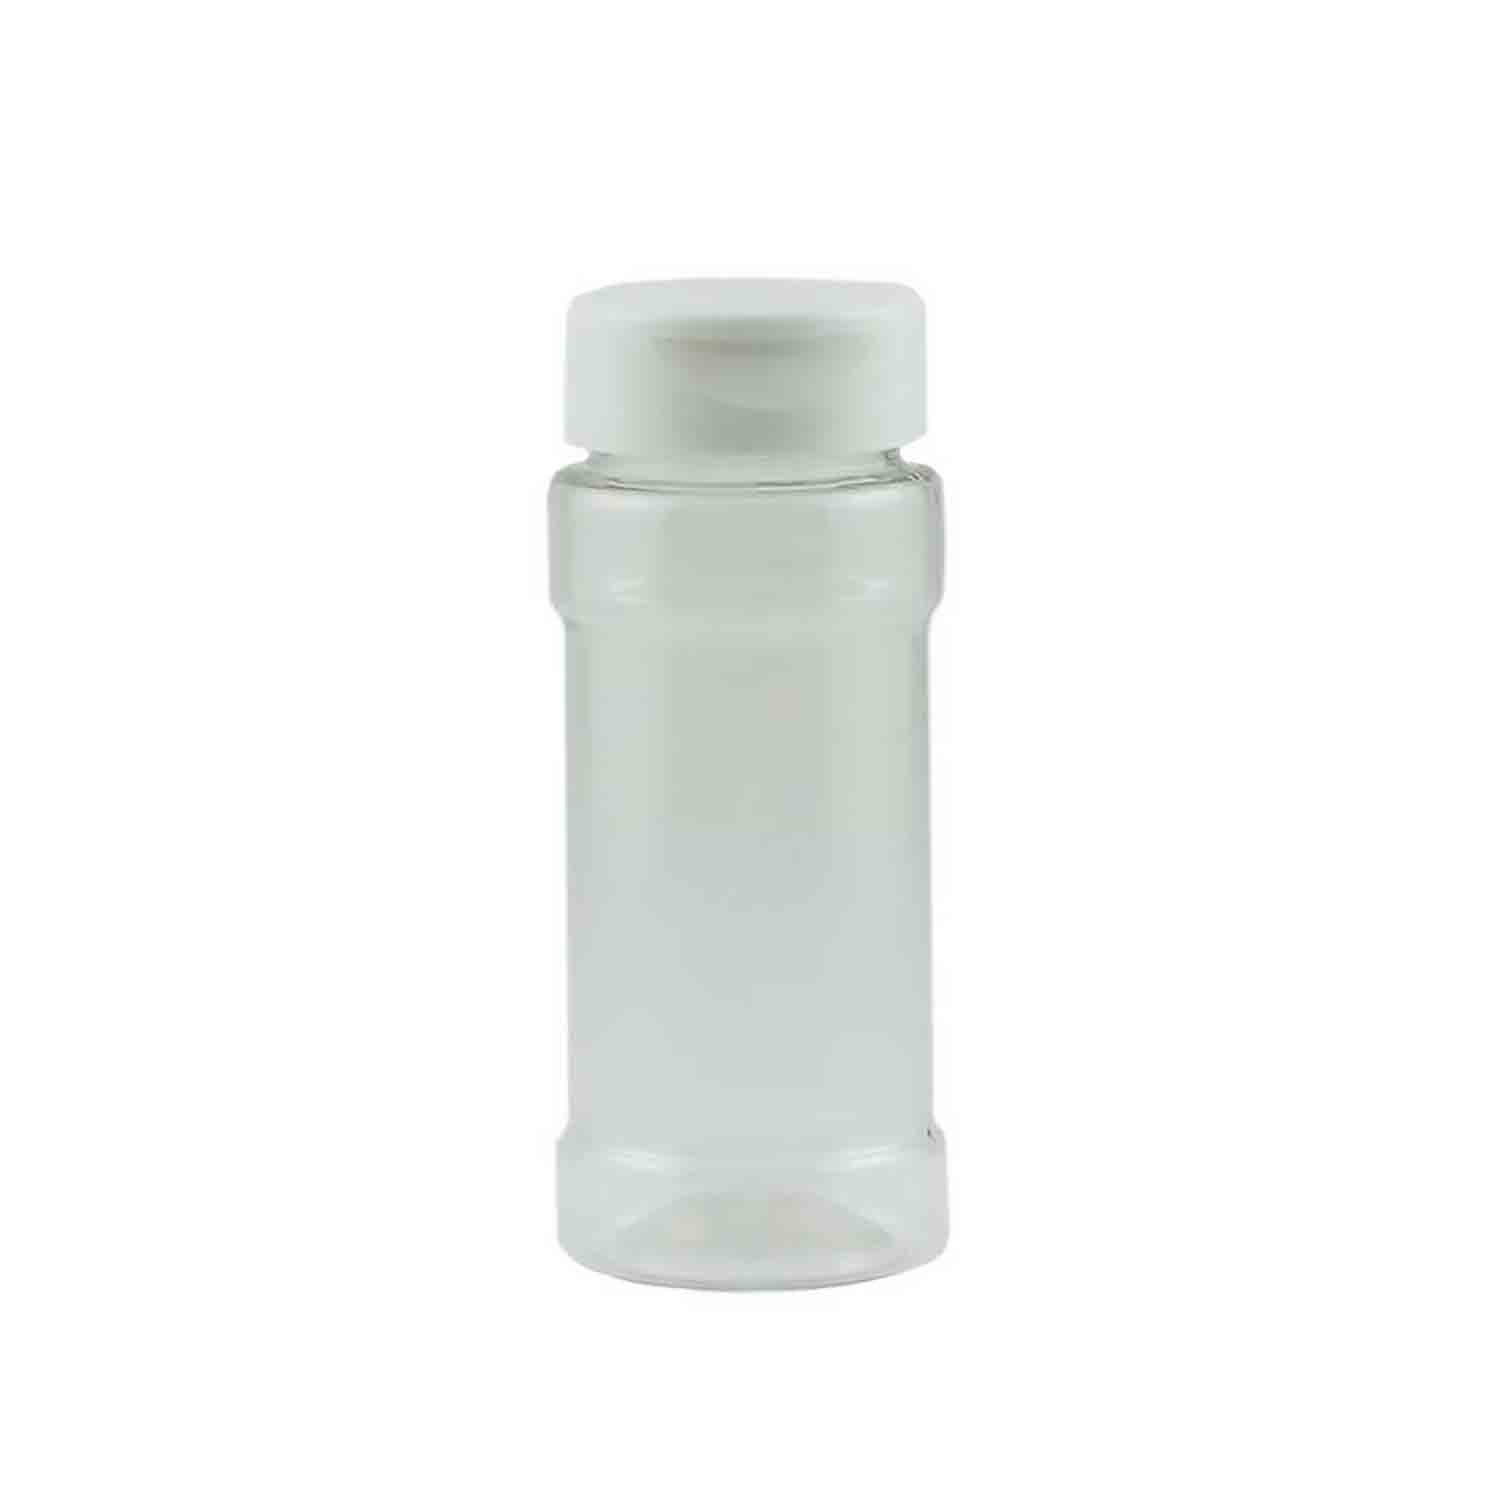 Small Shaker Bottle with Lid